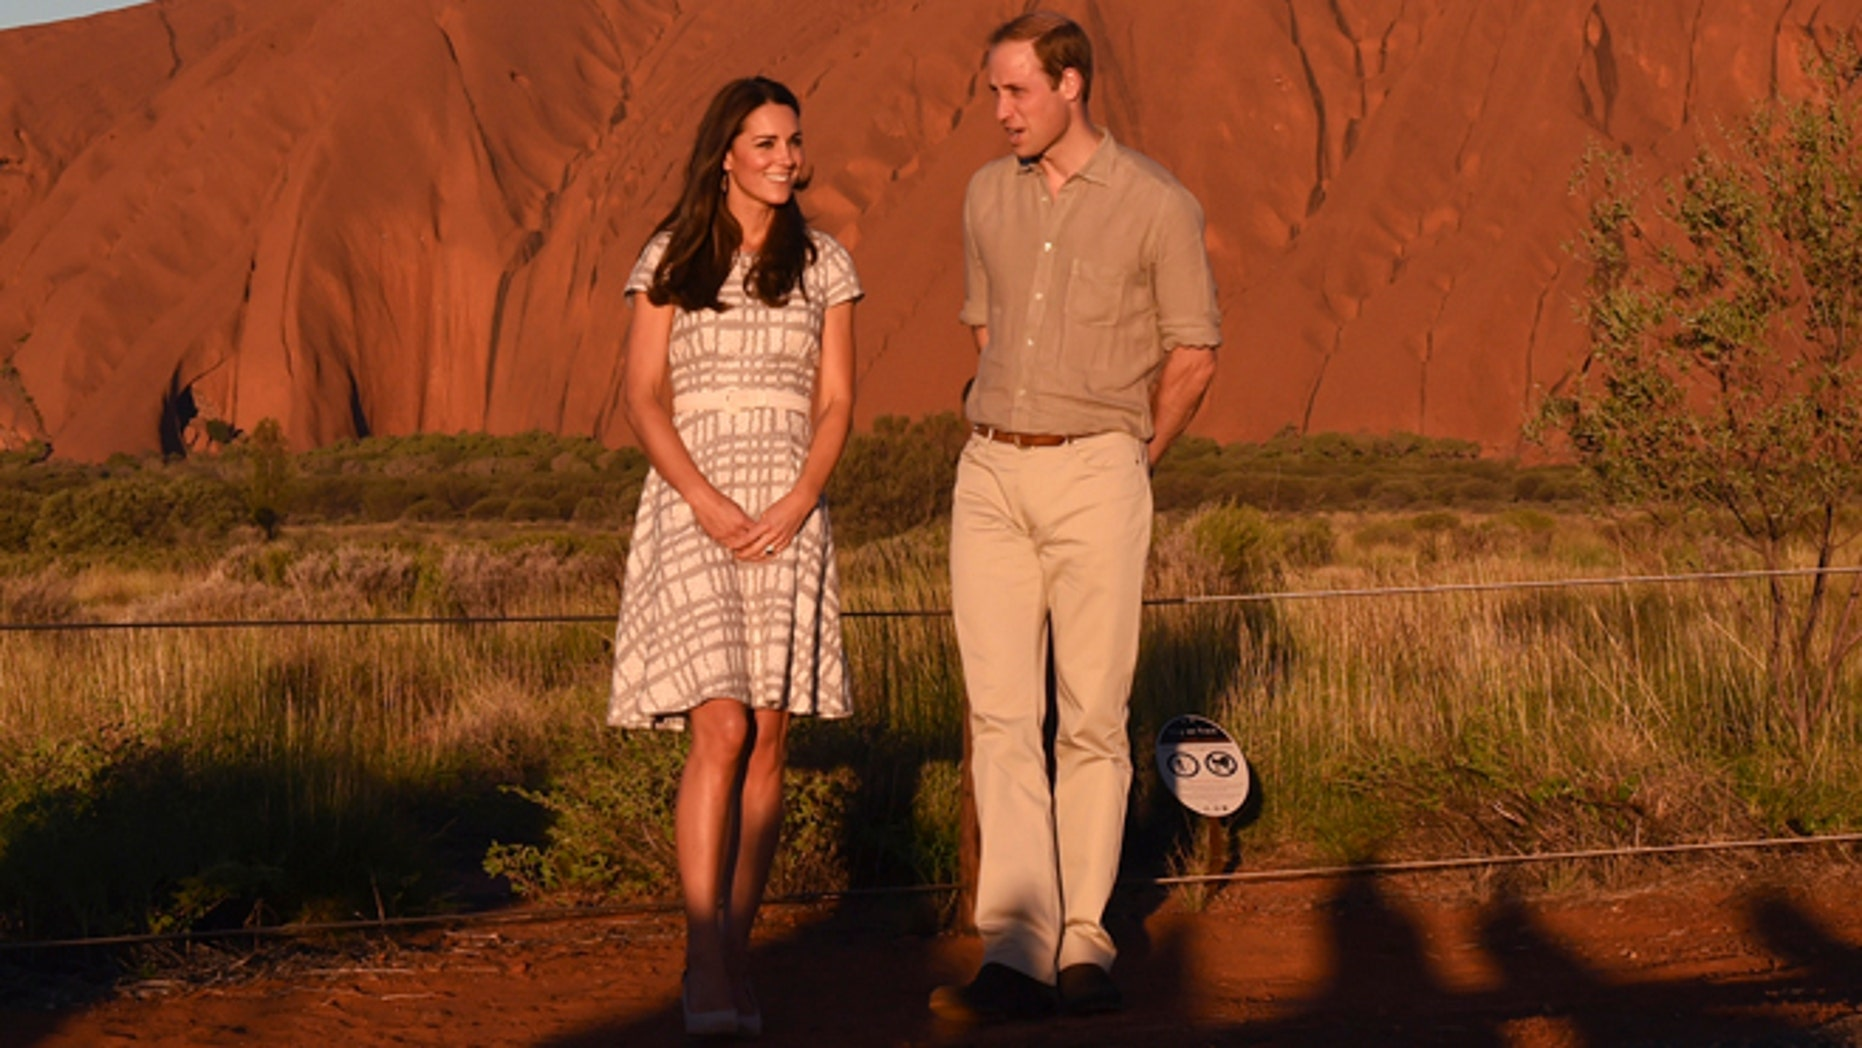 April 22, 2014: Britain's Prince William and his wife, Kate, Duchess of Cambridge, pose for a photo at sunset in Uluru, Australia.